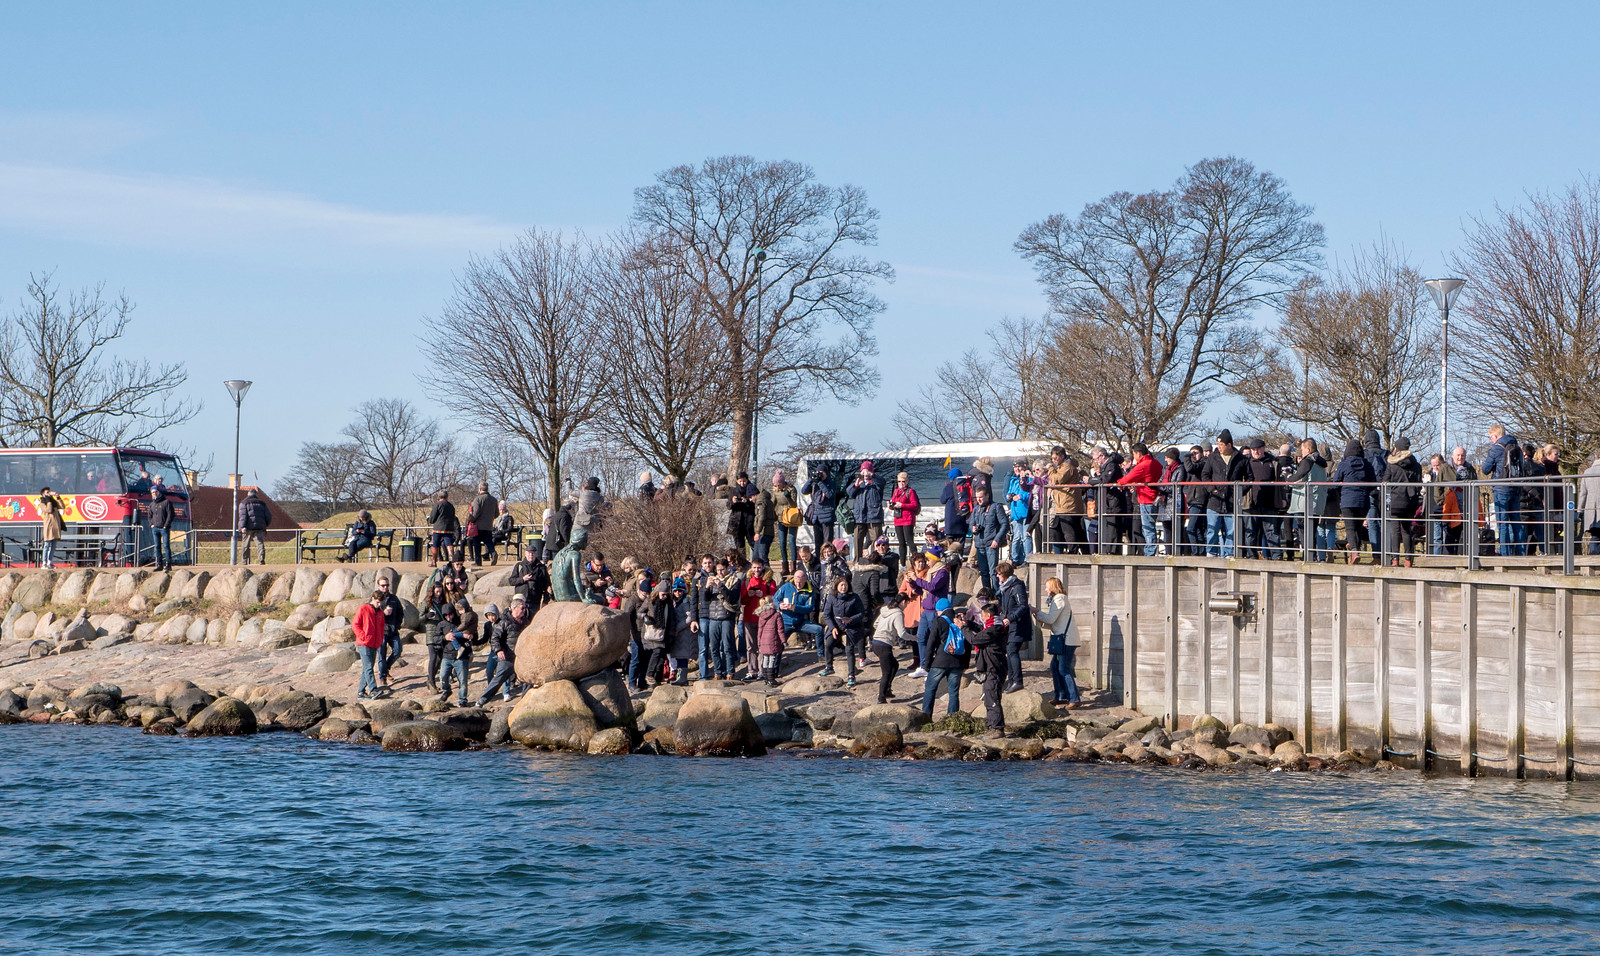 Canal boat ride in Copenhagen - The Little Mermaid statue and the crowds